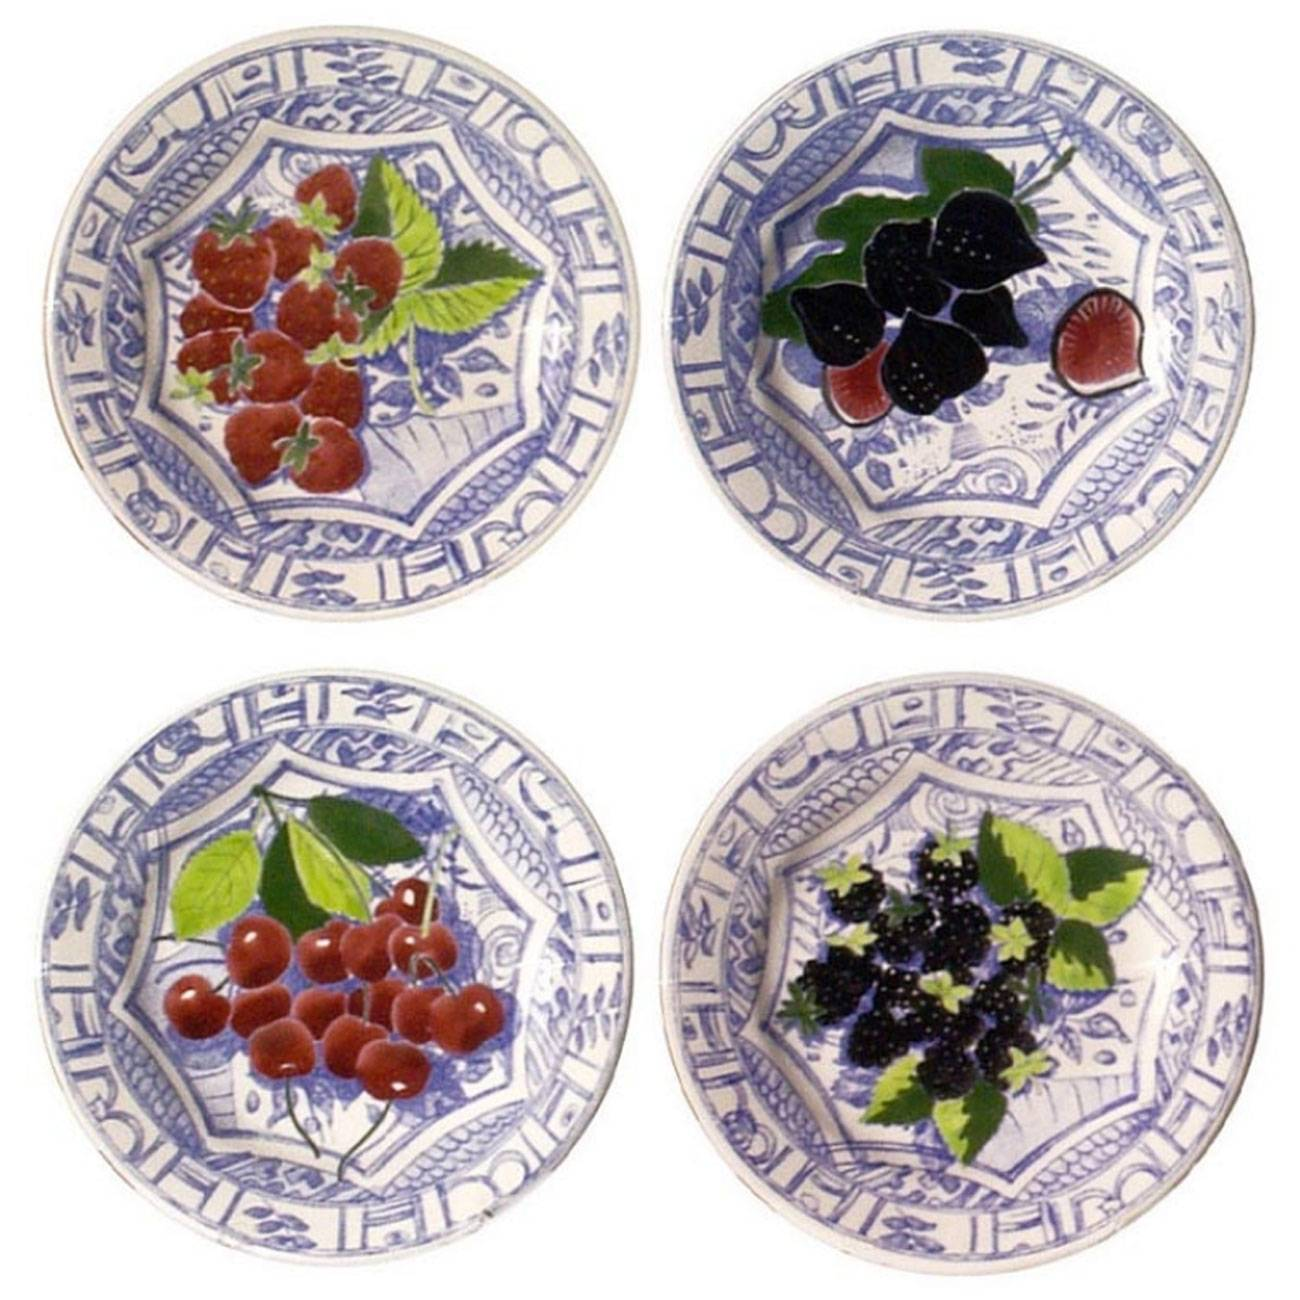 Gien Oiseau Blue Fruits Assorted Dessert Plate Set of 4  sc 1 st  Michael C. Fina & Gien Oiseau Blue Fruits Assorted Dessert Plate Set of 4 - Michael C ...